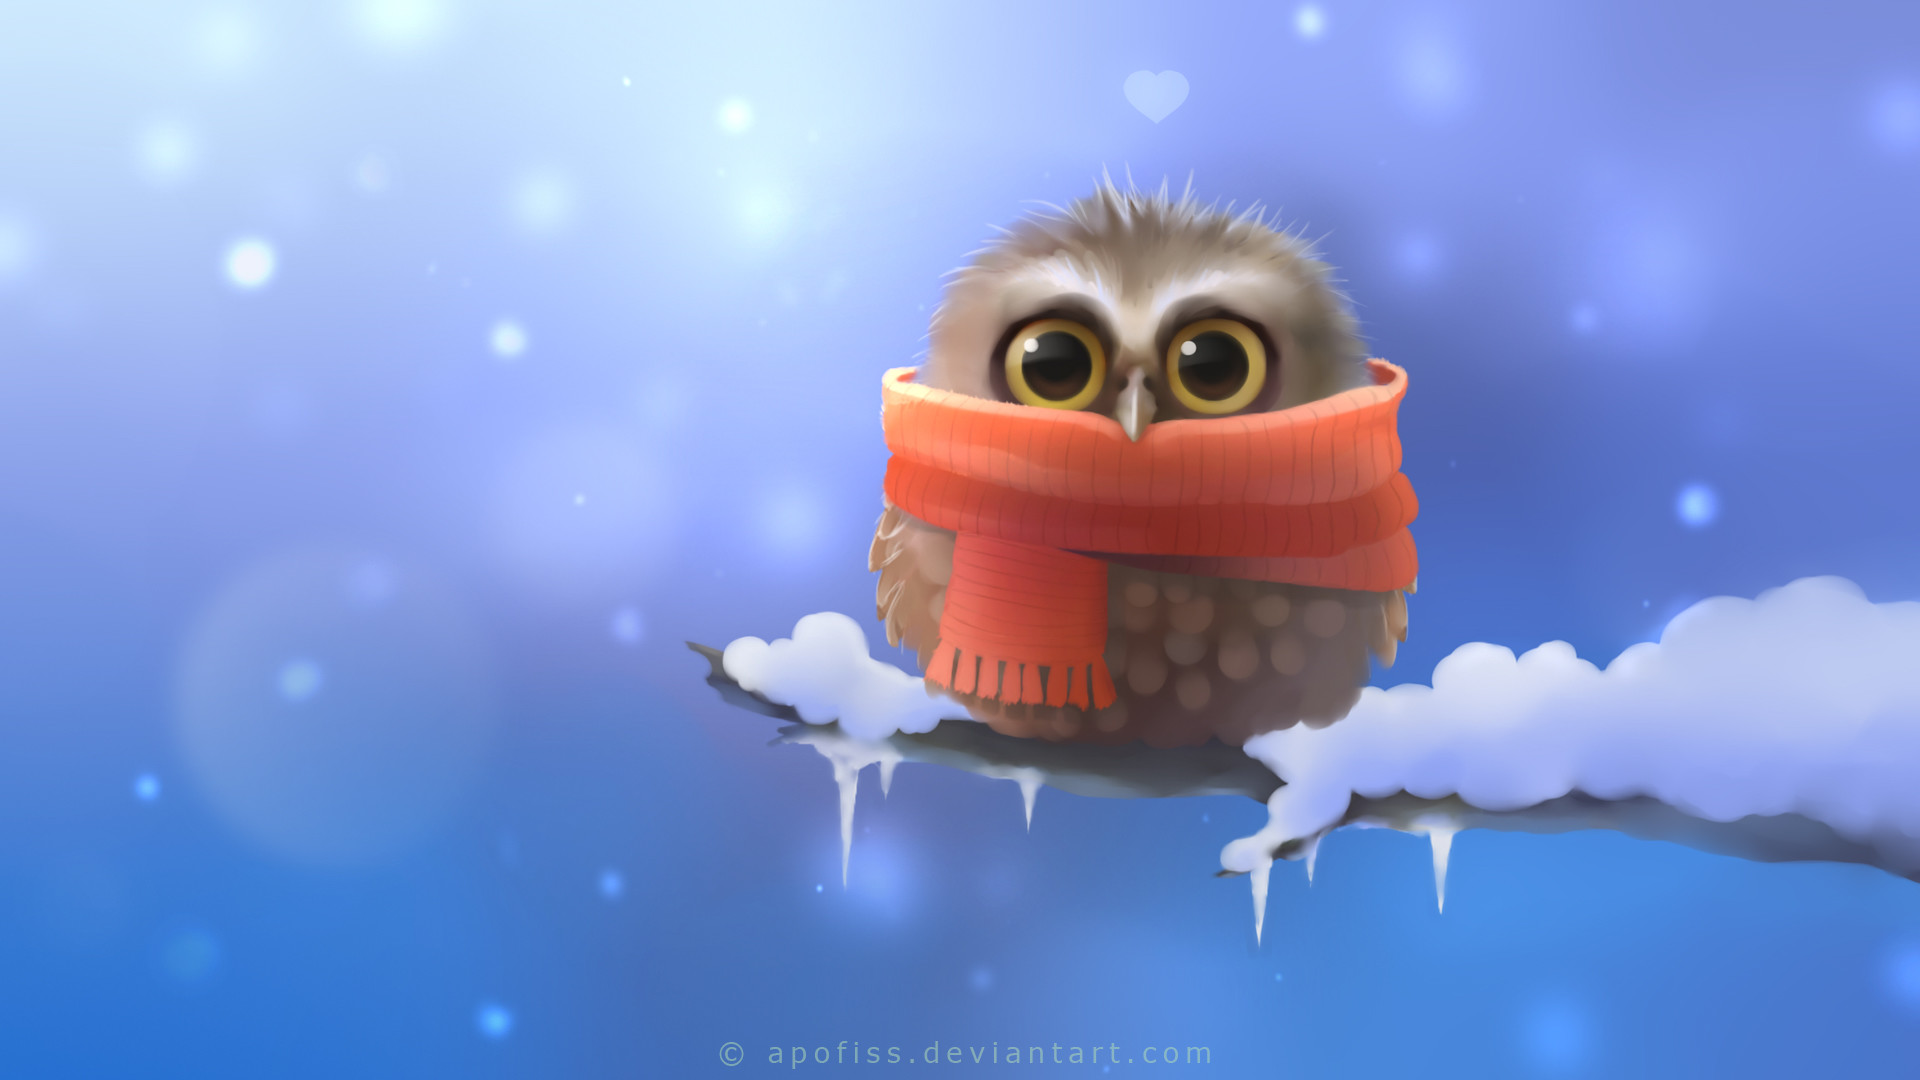 Cute Winter Backgrounds. Cute Owl Wallpapers | HD Wallpapers